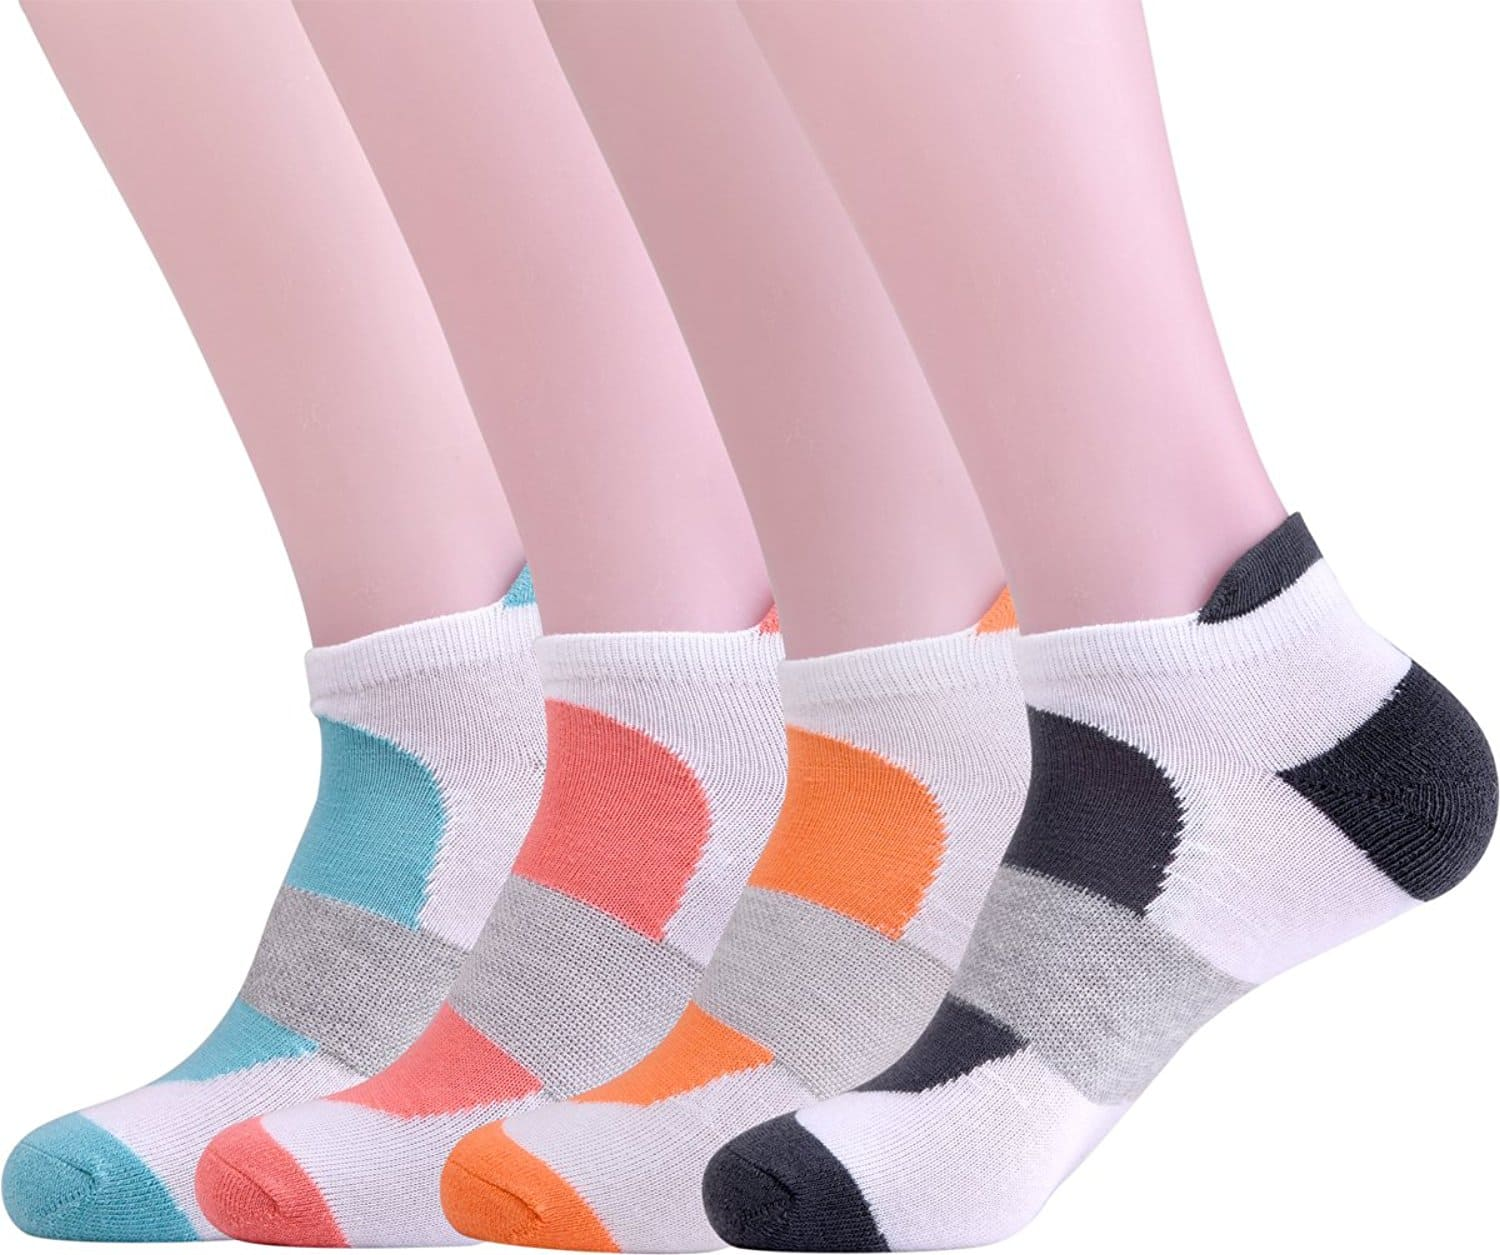 Women's 4 Outdoor Sports White and Colorful Patterned Low Cut Cotton Socks  $6.50 +  Free shipping